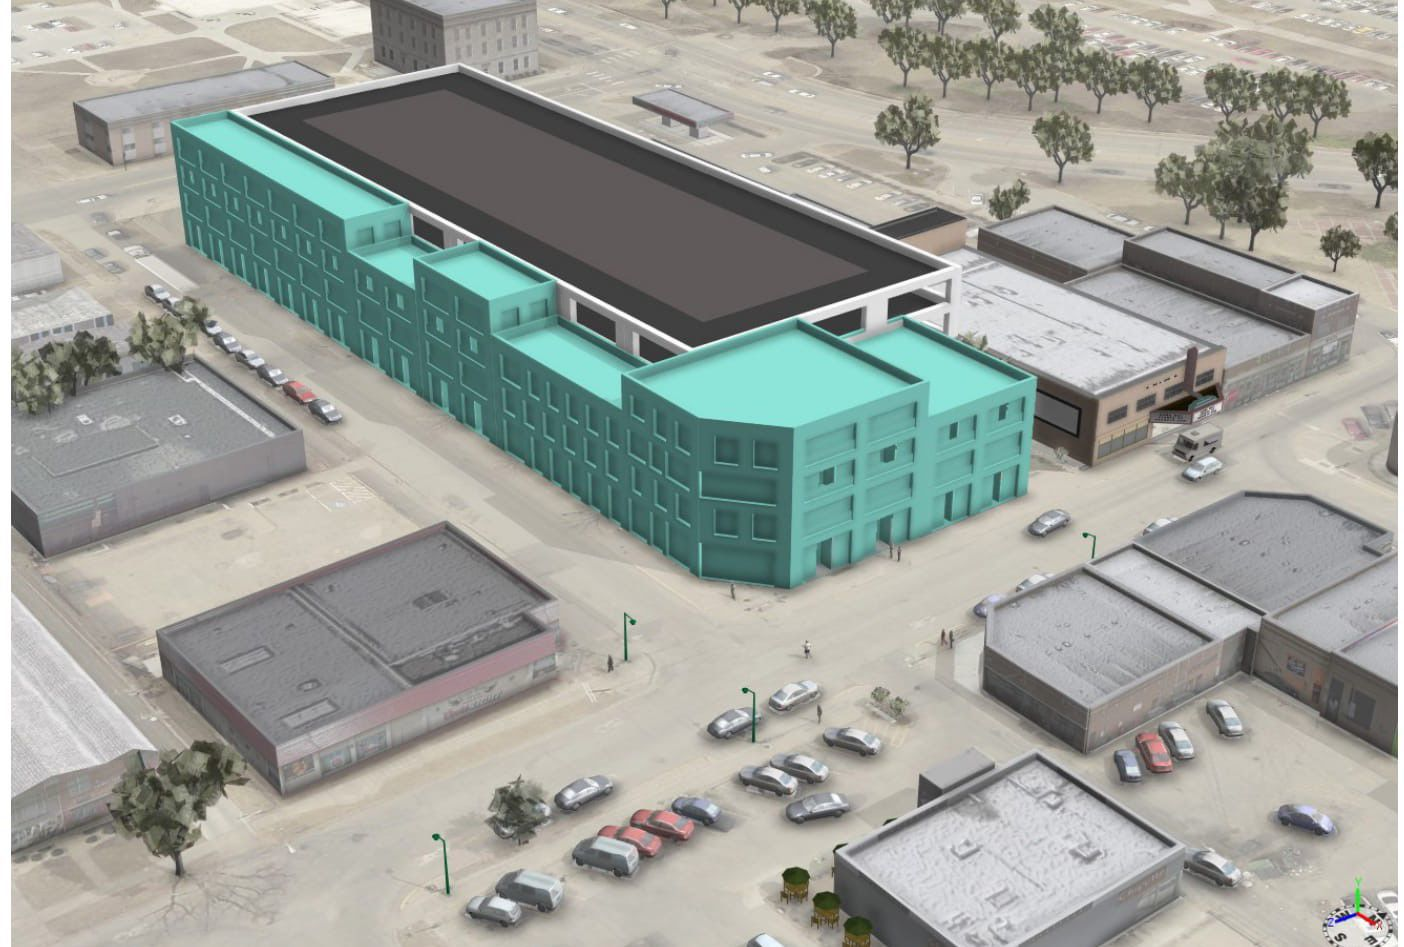 A rendering from Olsson Associates shows a concept for a five-story parking garage in Aggieville next to Rally House. In this concept the garage is wrapped ... & City to consider selling Aggieville parking lot for hotel | City ...